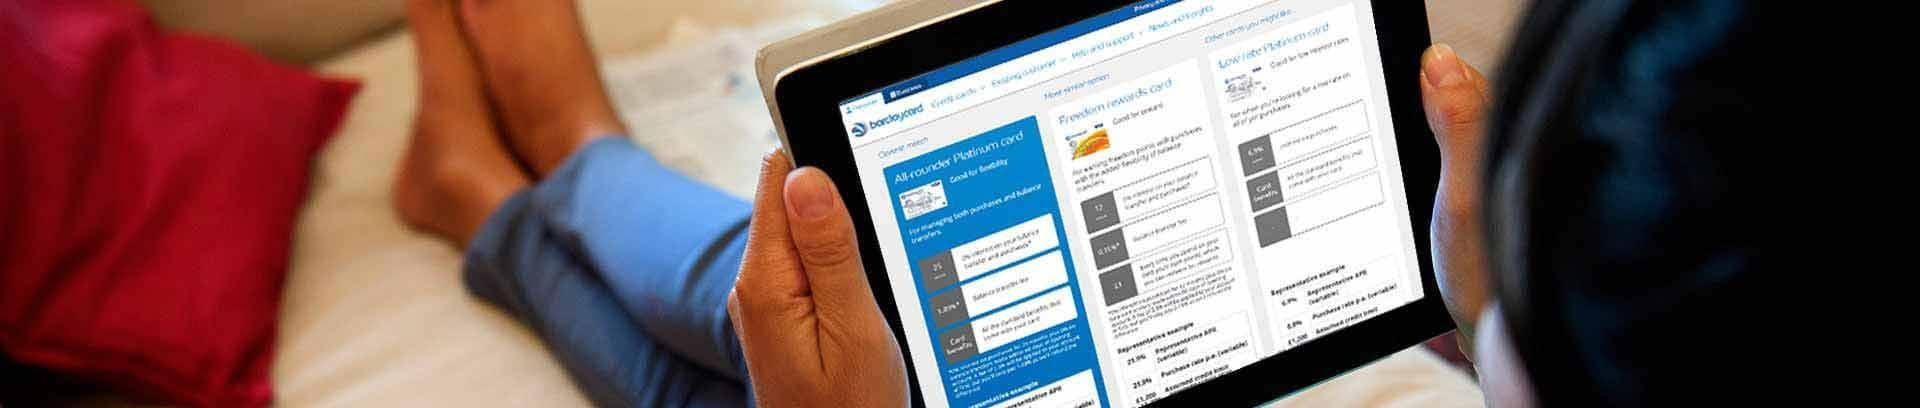 Barclaycard credit cards online banking barclaycard try barclaycard finder reheart Images